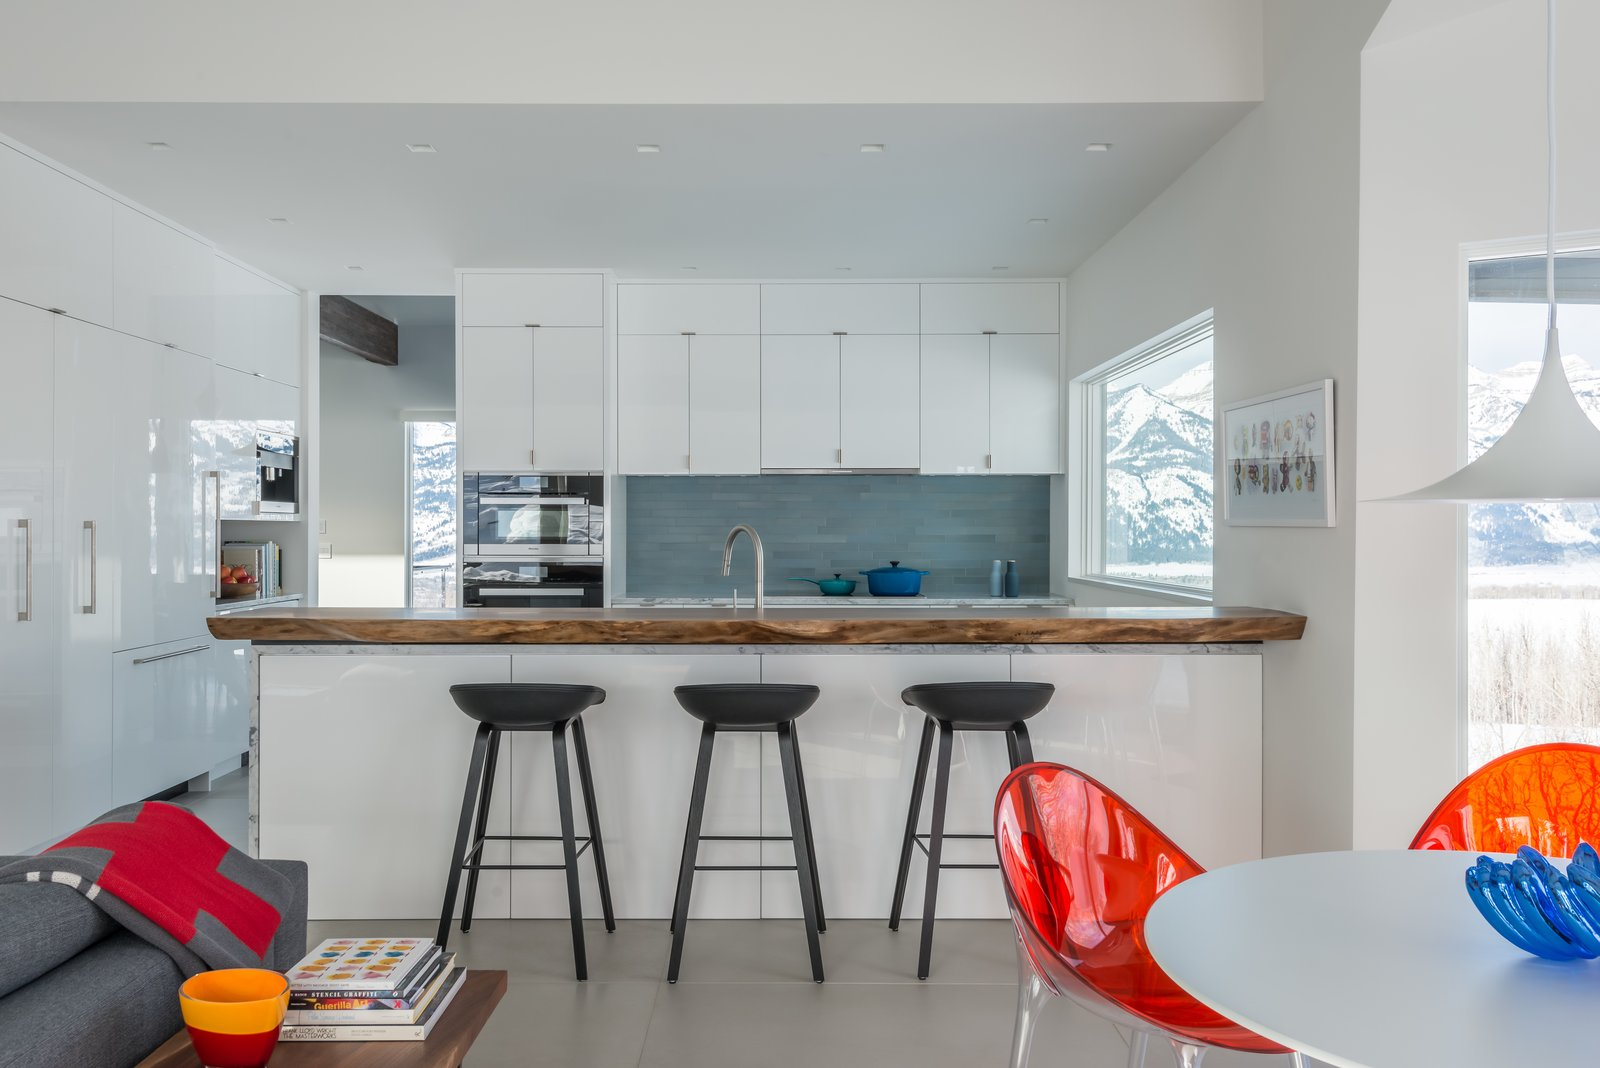 Kitchen cabinets are painted white and lacquered with an automotive finish.  Heath Tile adds color in the backsplash while a live-edge walnut counter adds depth to the room.  San Francisco Meets Jackson Hole in a Modern Renovation